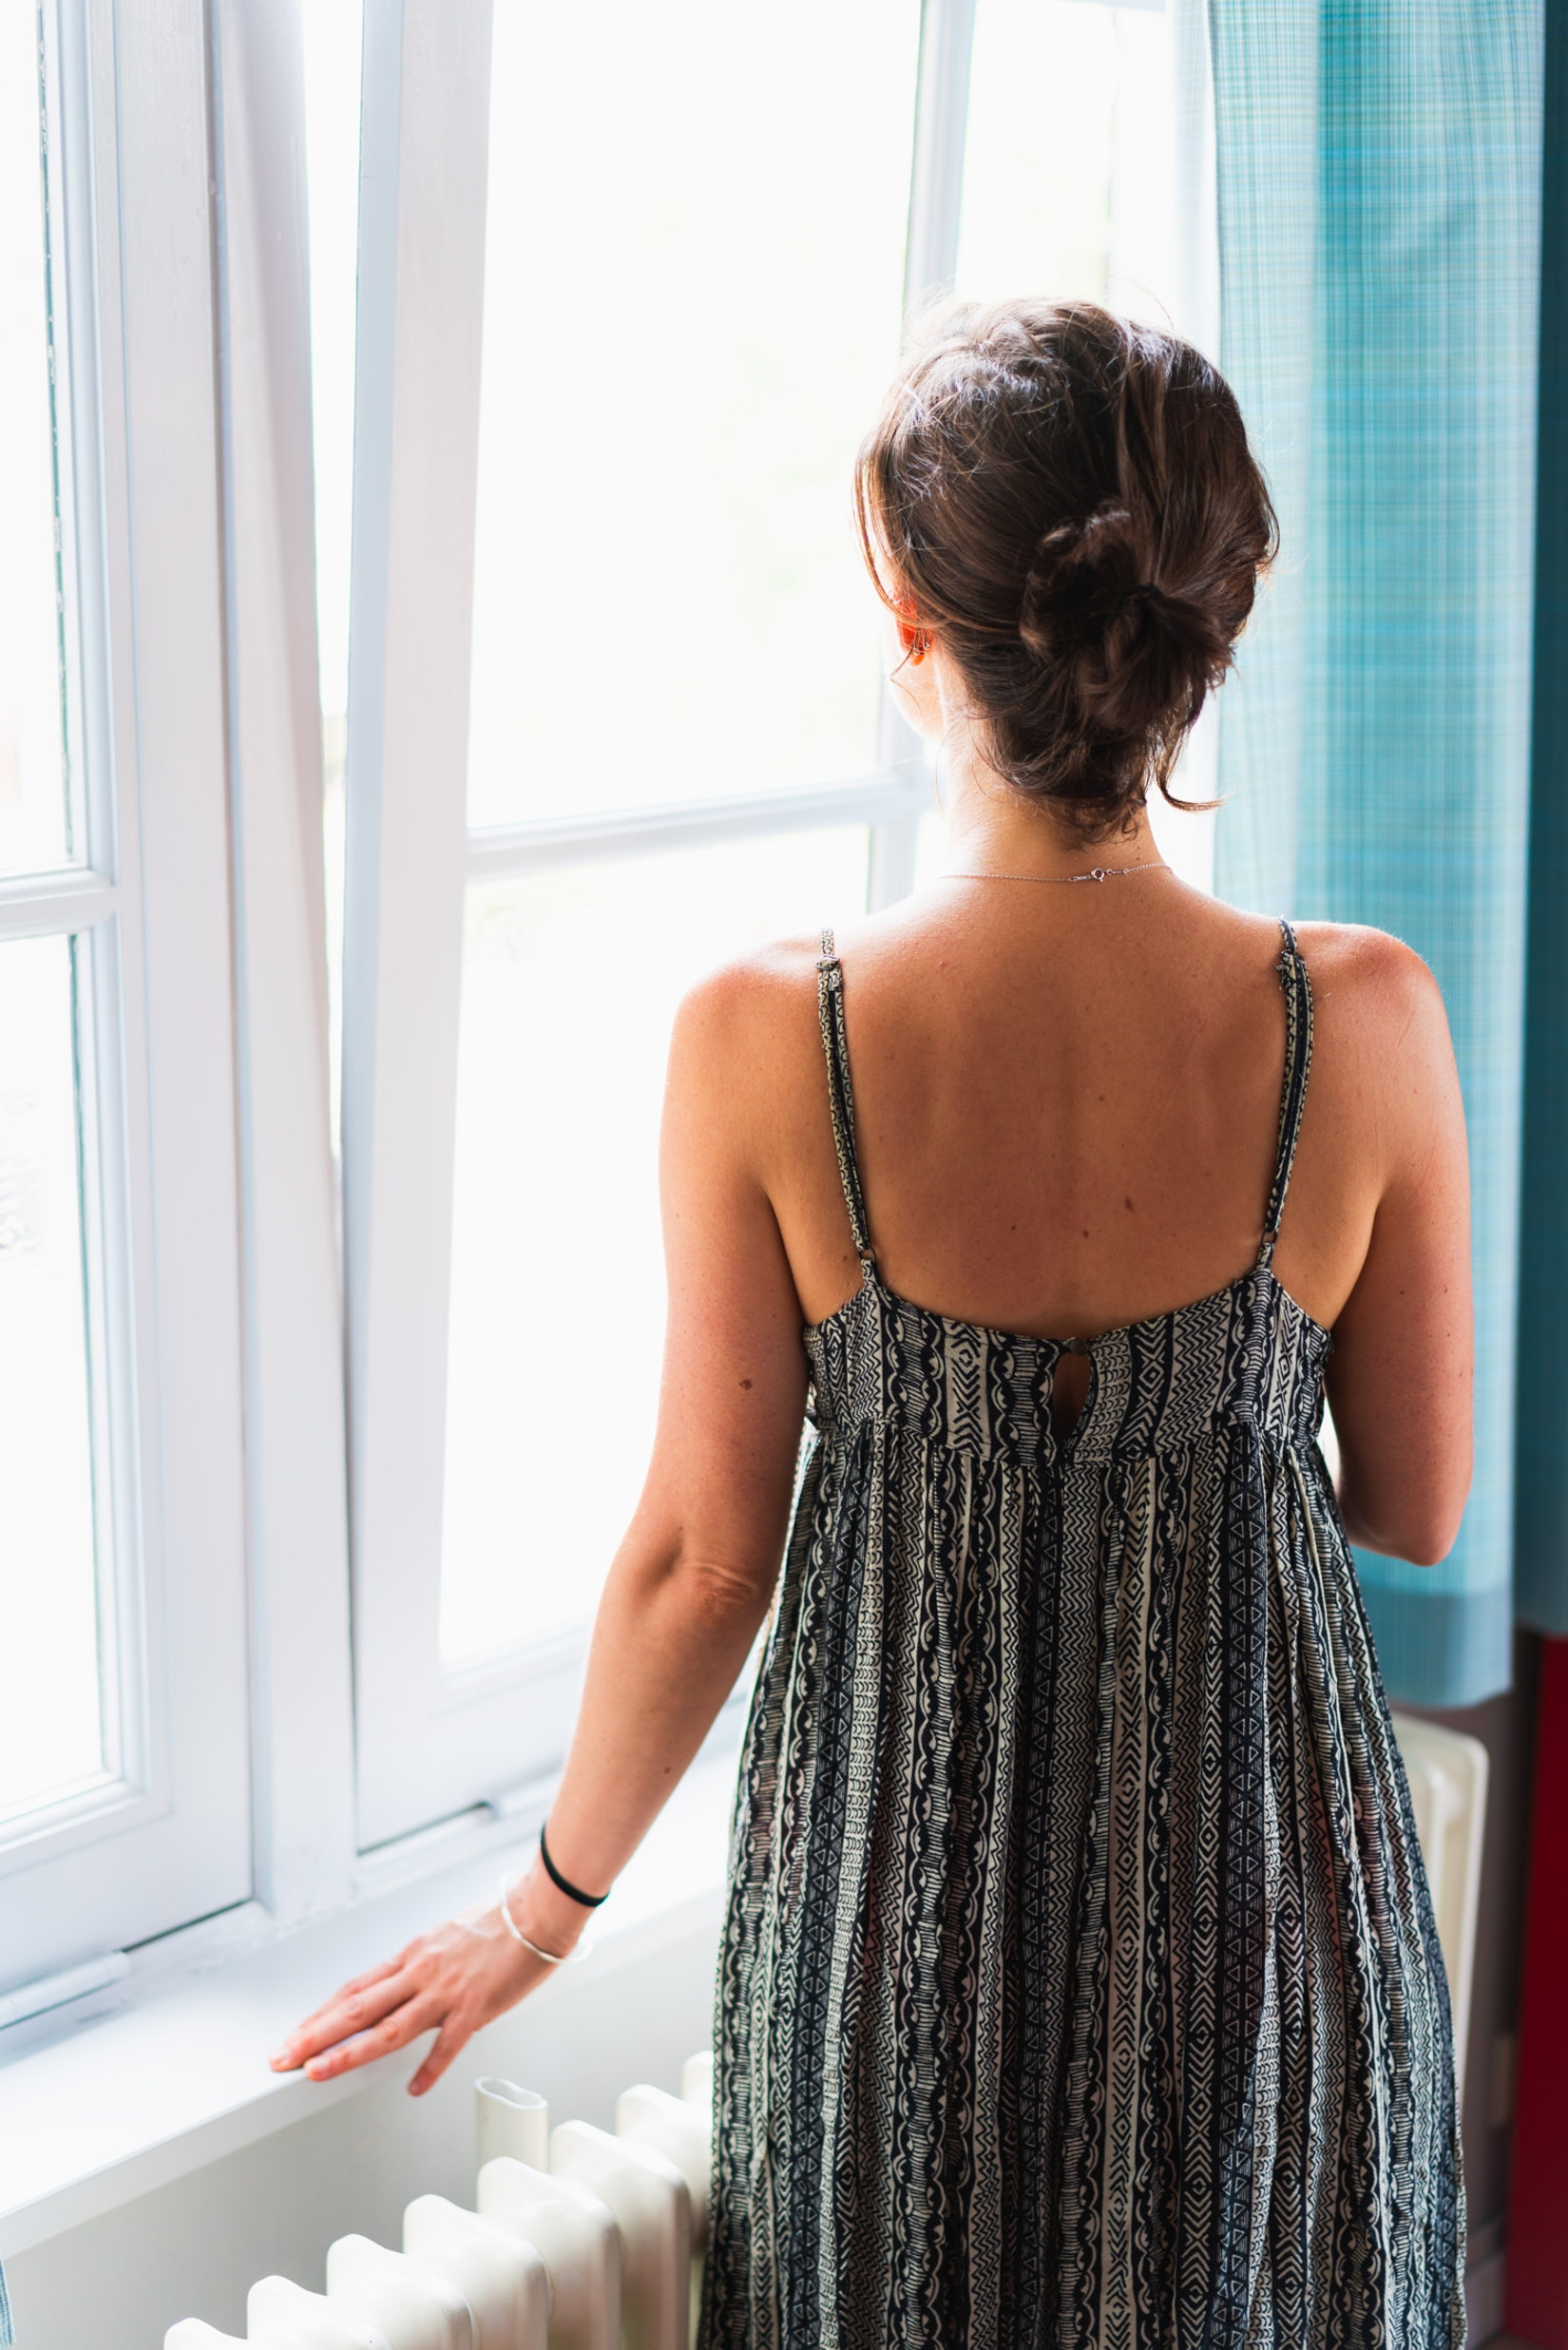 Girl at a window in a hotel room